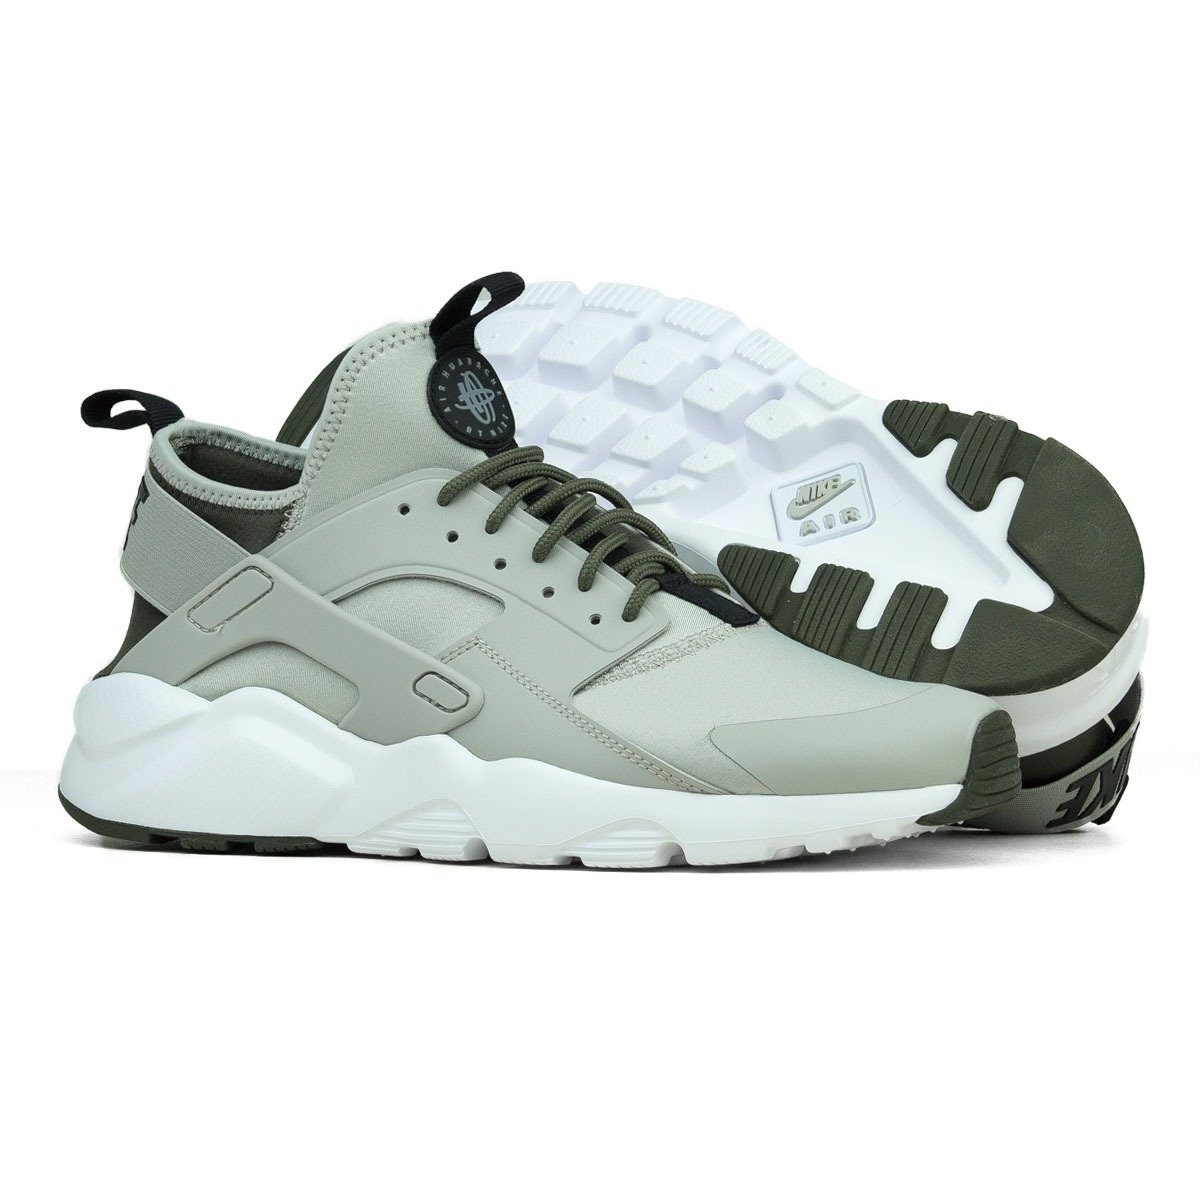 edbd575a5133 tênis nike air huarache run ultra - 100% original. Carregando zoom.